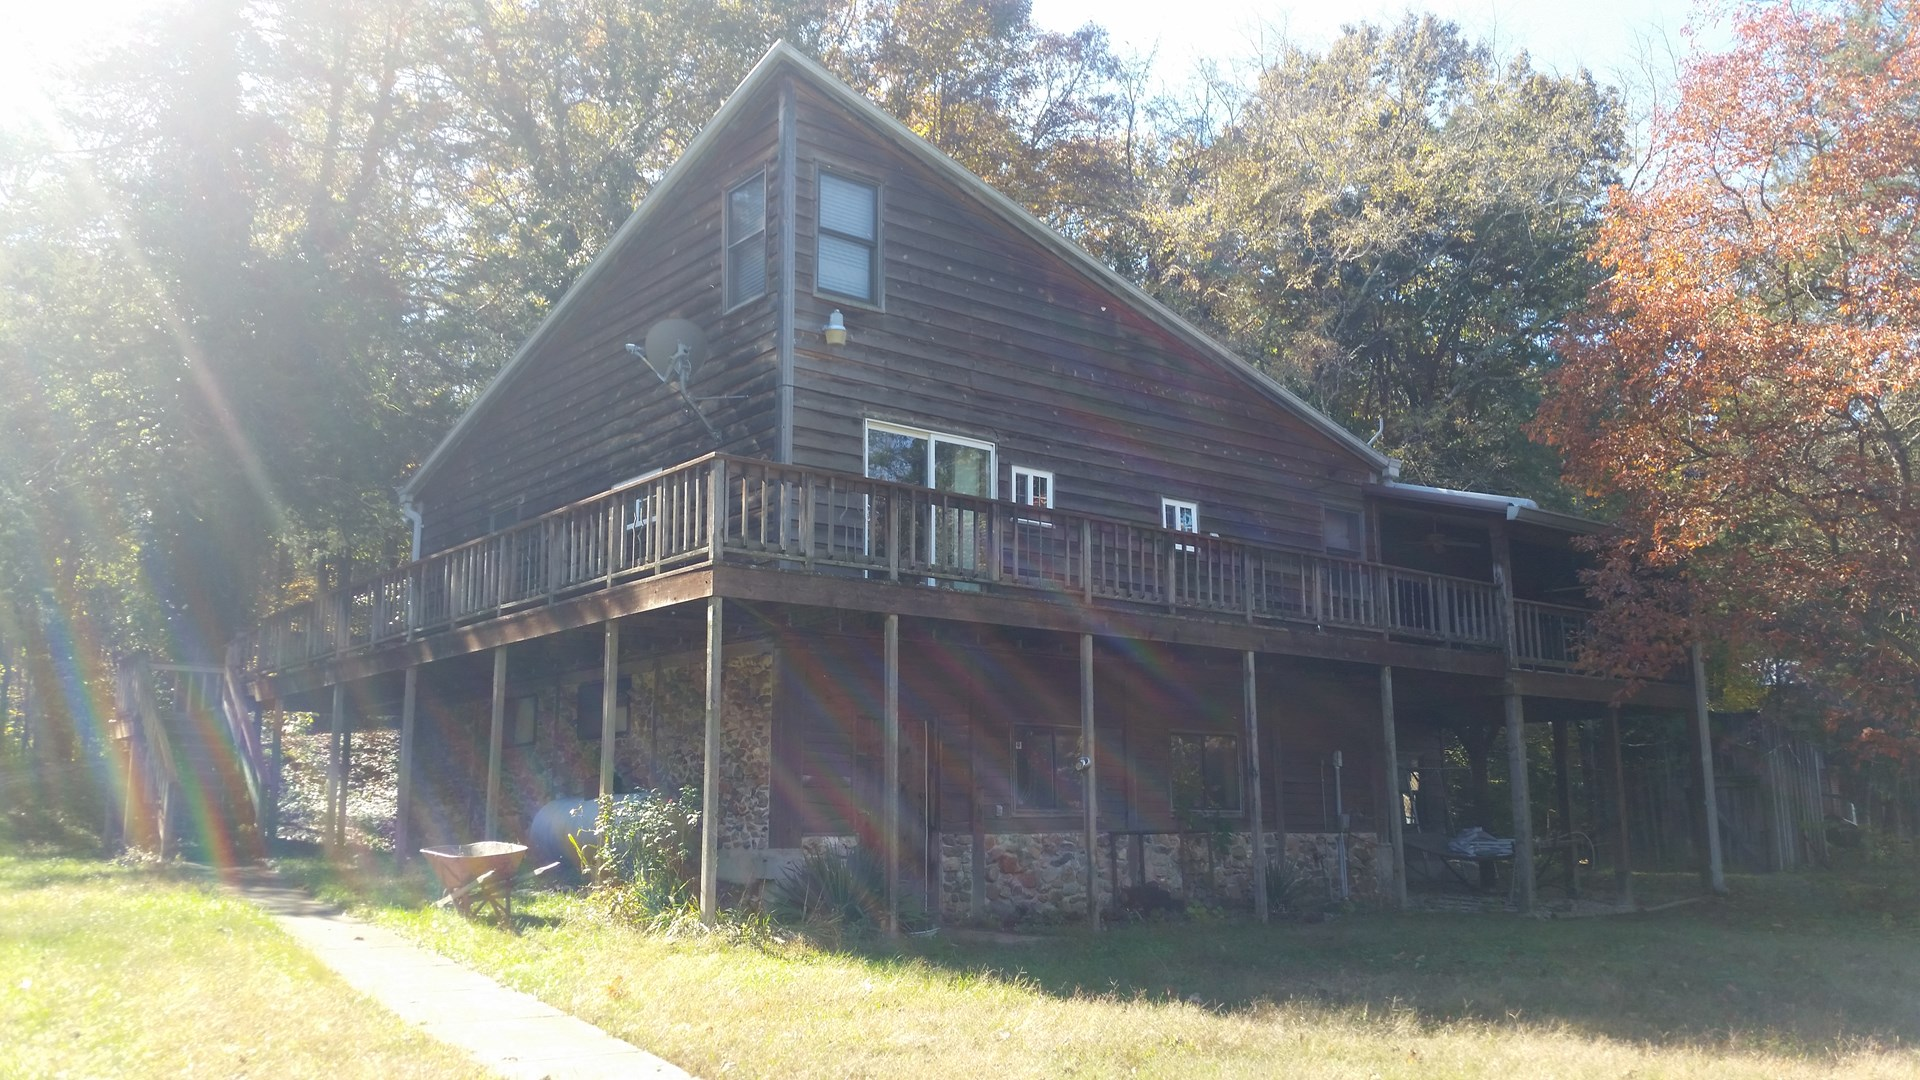 For Sale: Lesterville Dream house w/ access to 5 ac of river